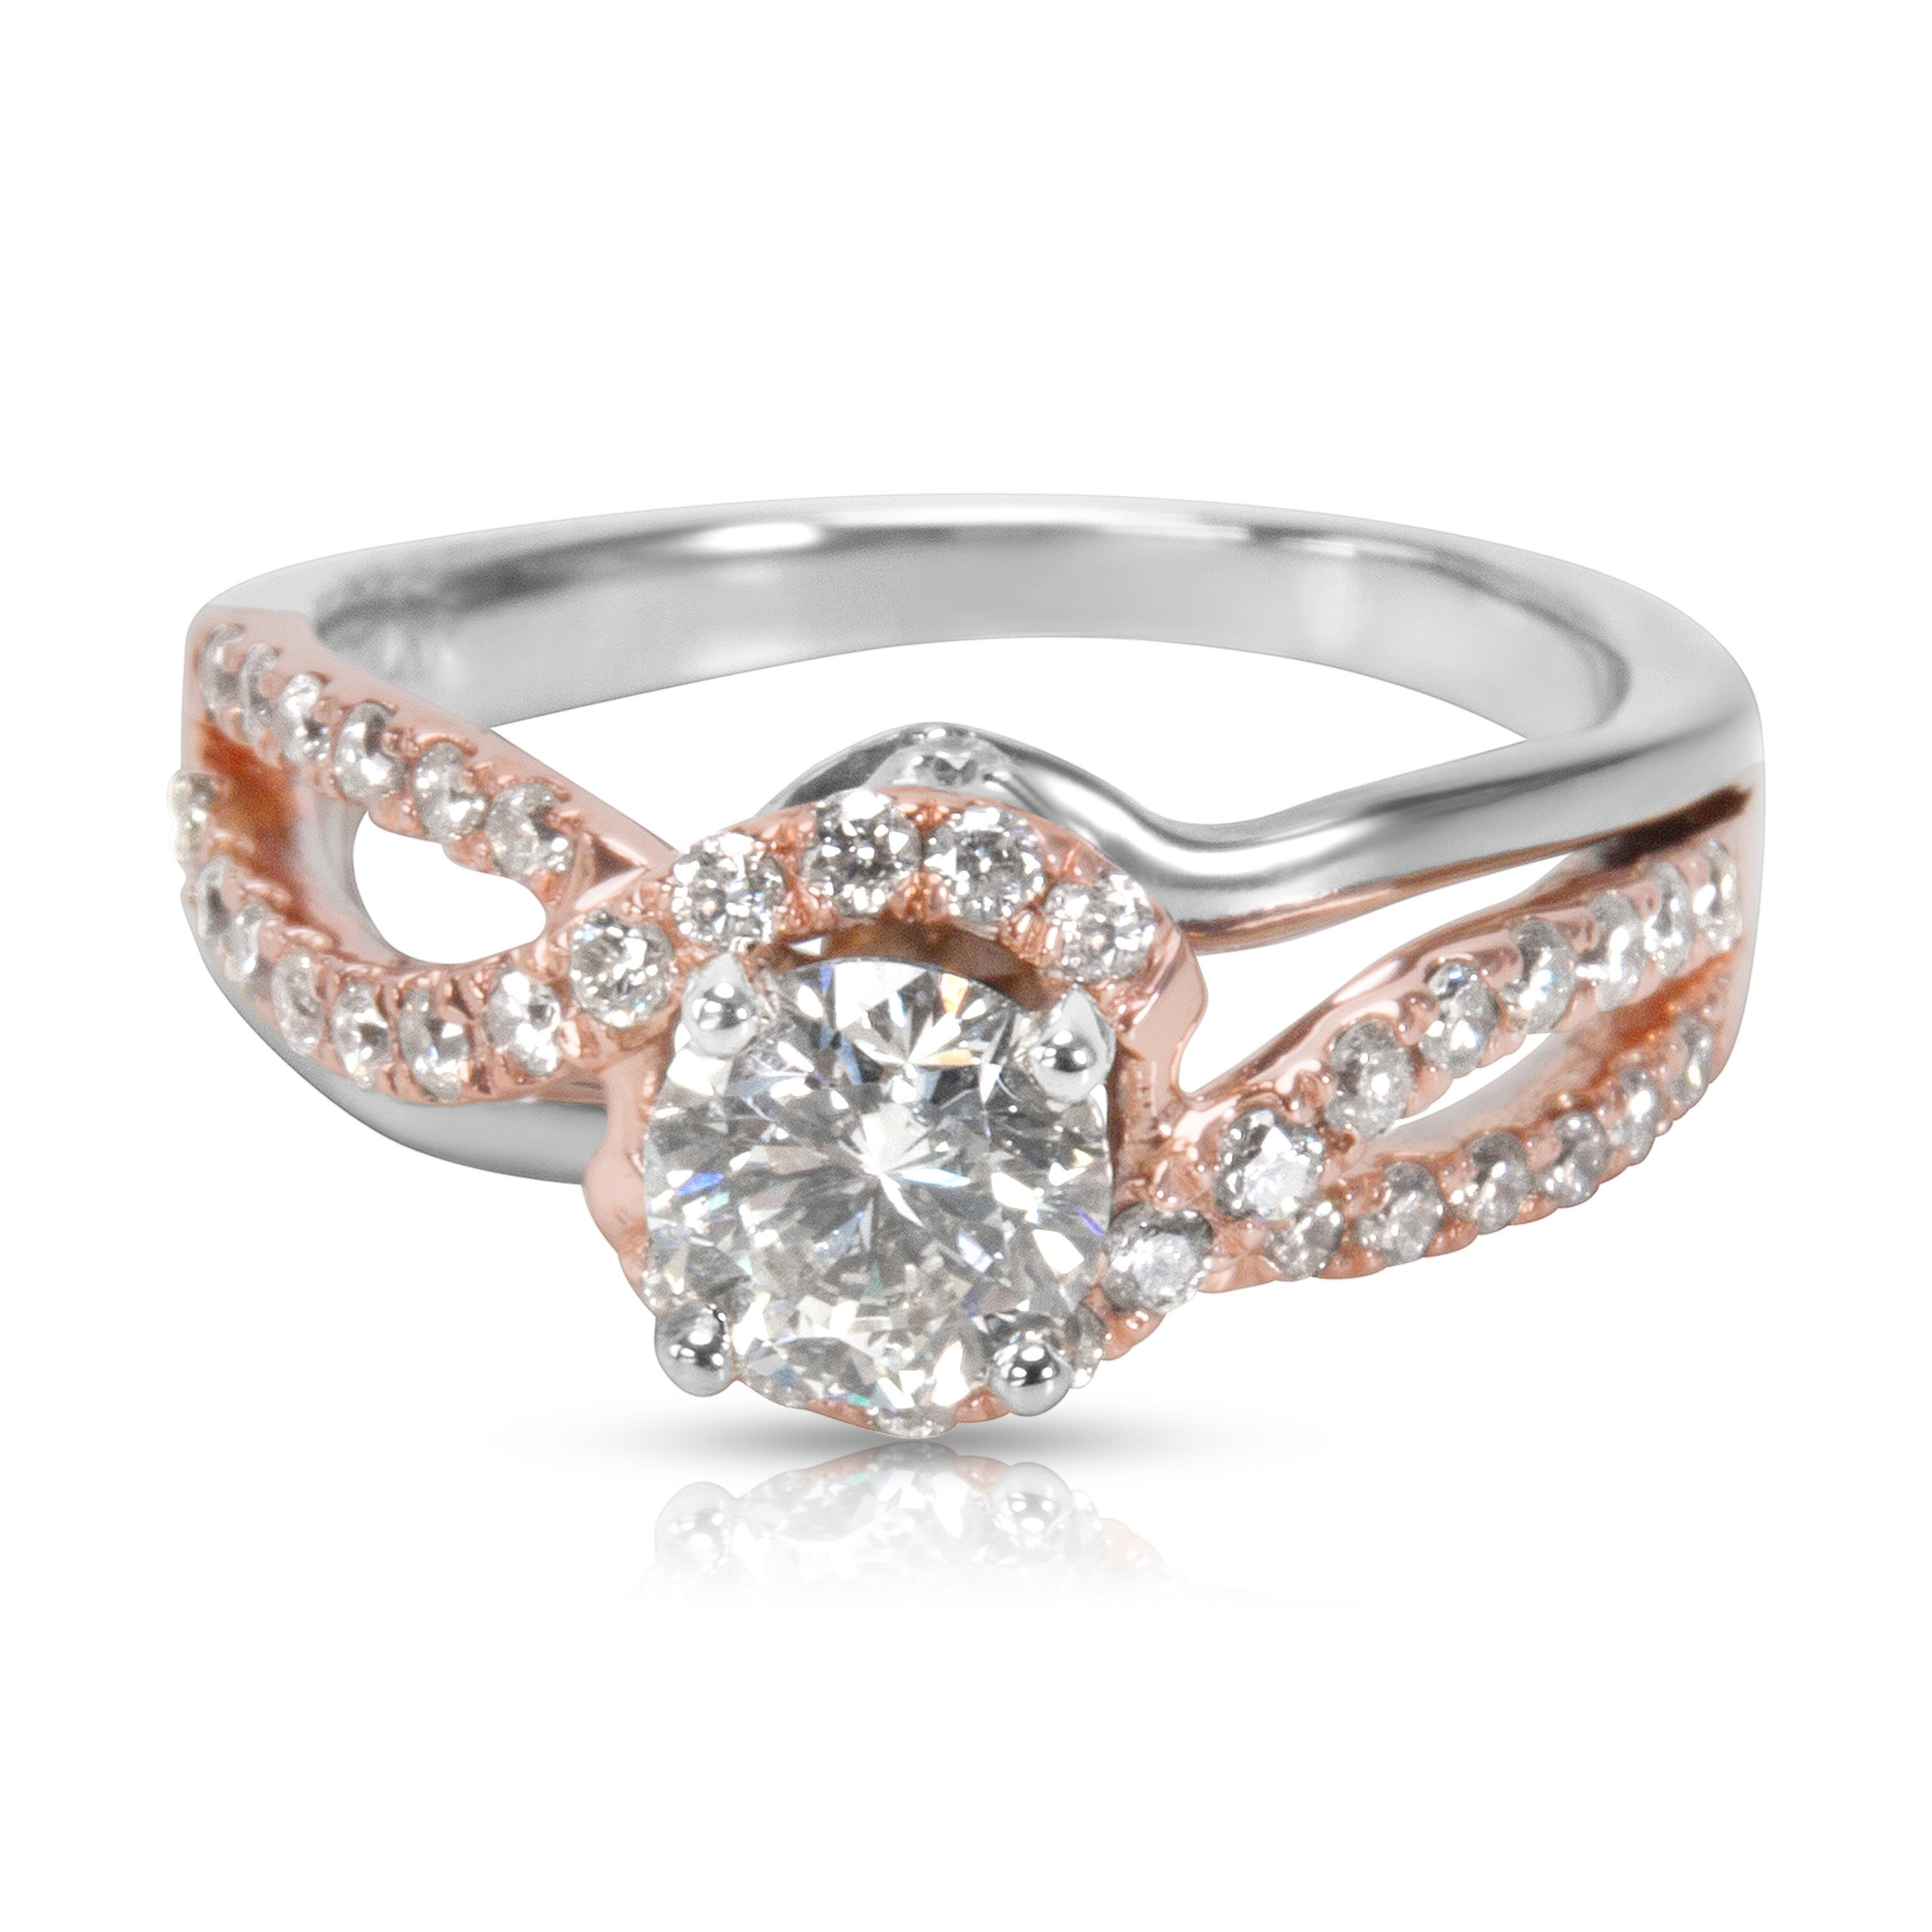 Shop Pre Owned Kay Jewelers Diamond Engagement Ring In Two Toned Gold 1 00 Ctw Overstock 23056494